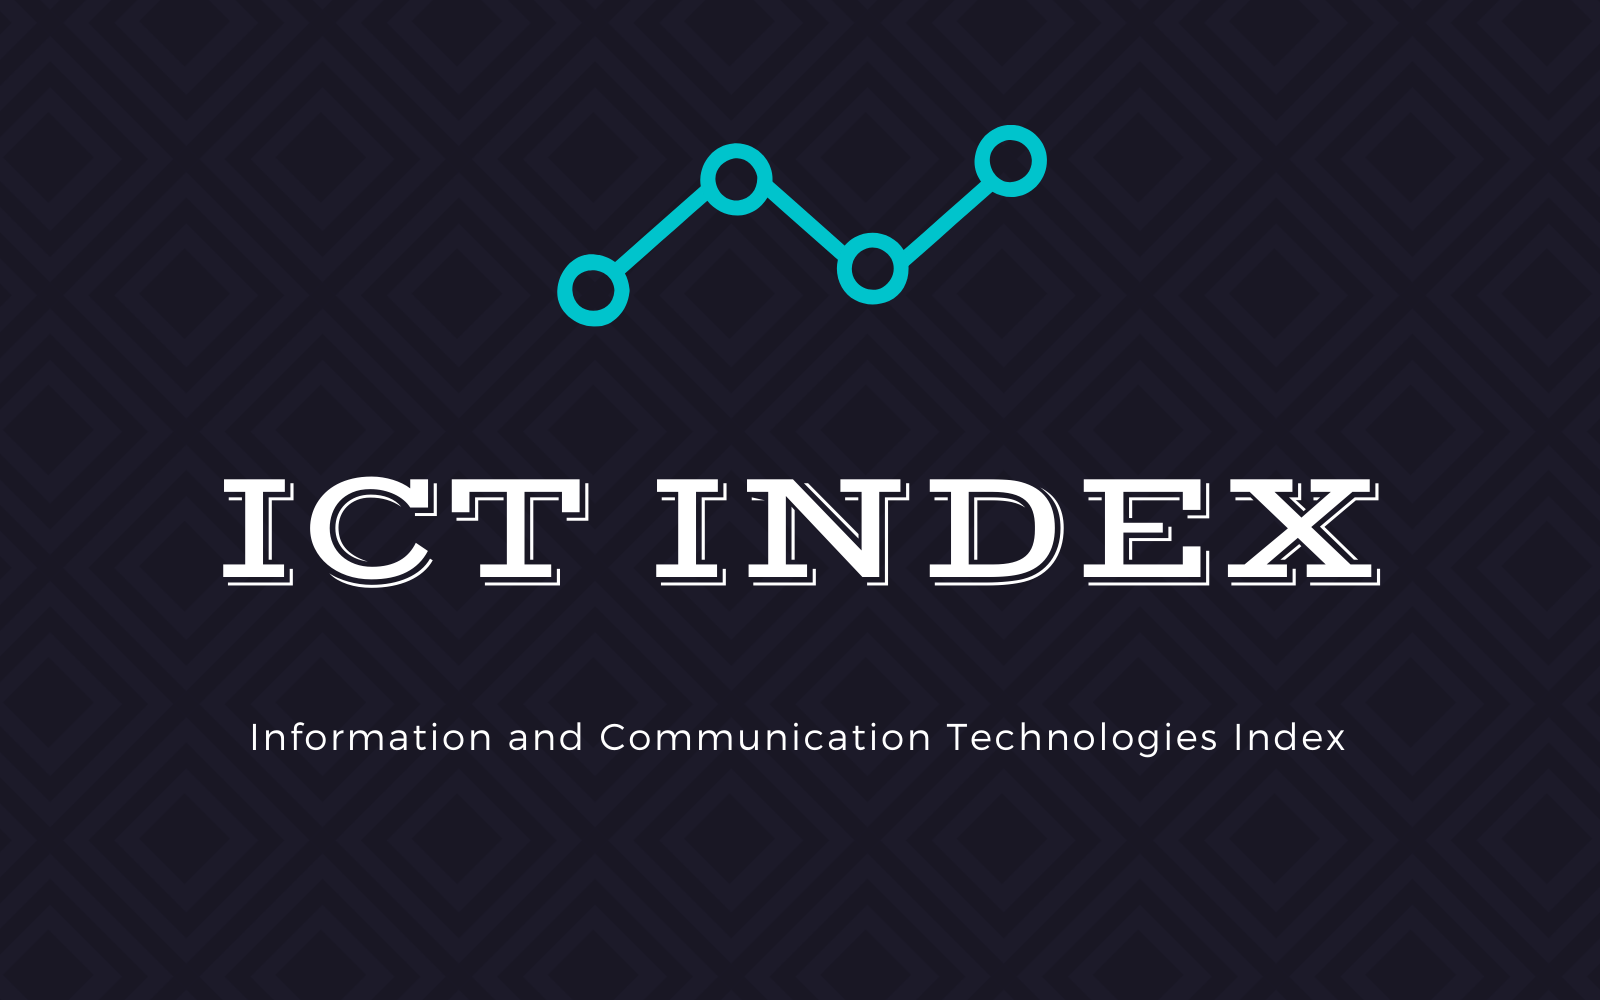 ict index